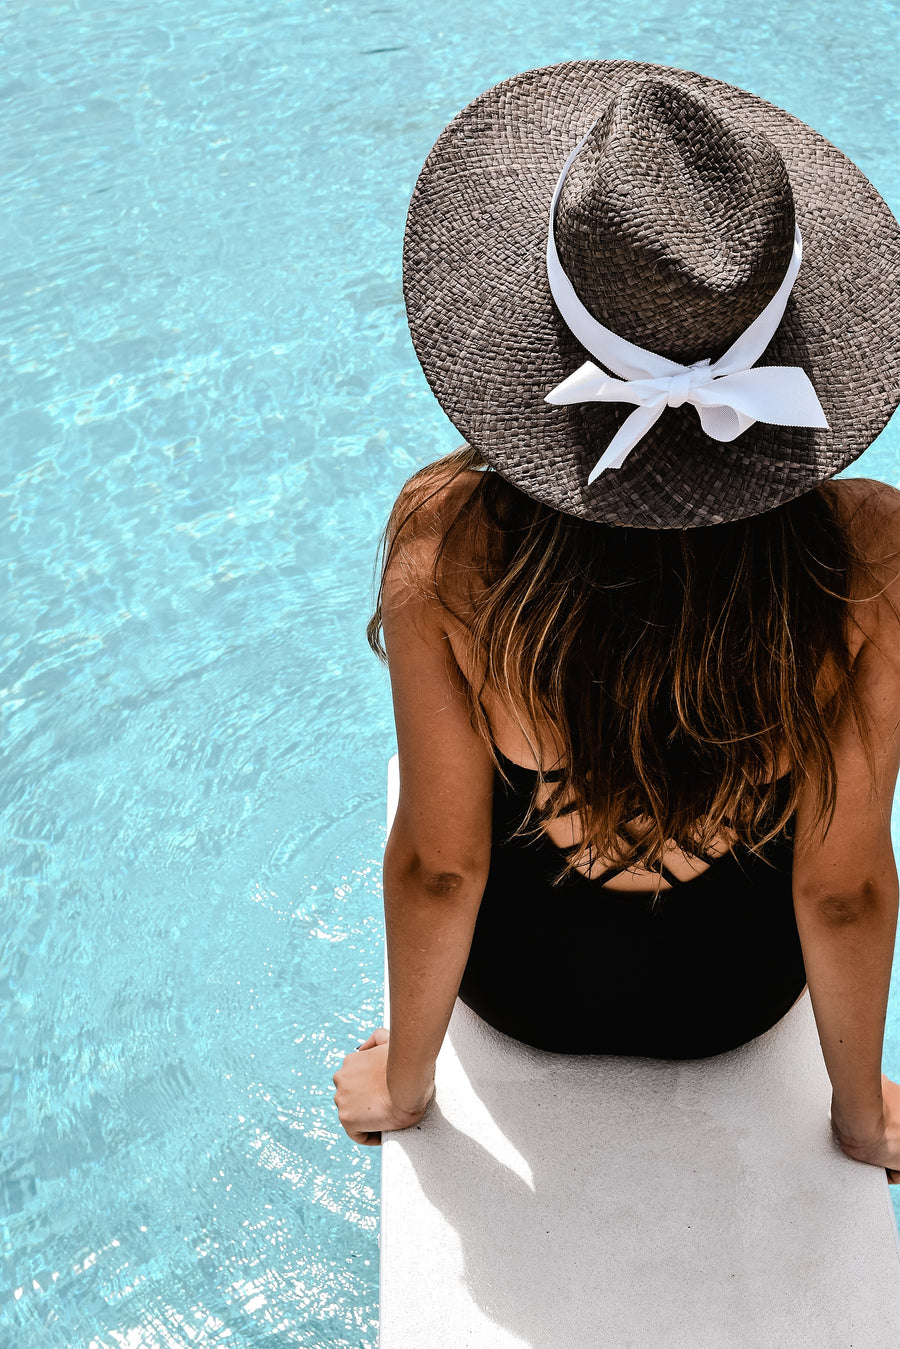 Gray raffia straw panama hat with white grosgrain tie on model sitting on pool diving board.